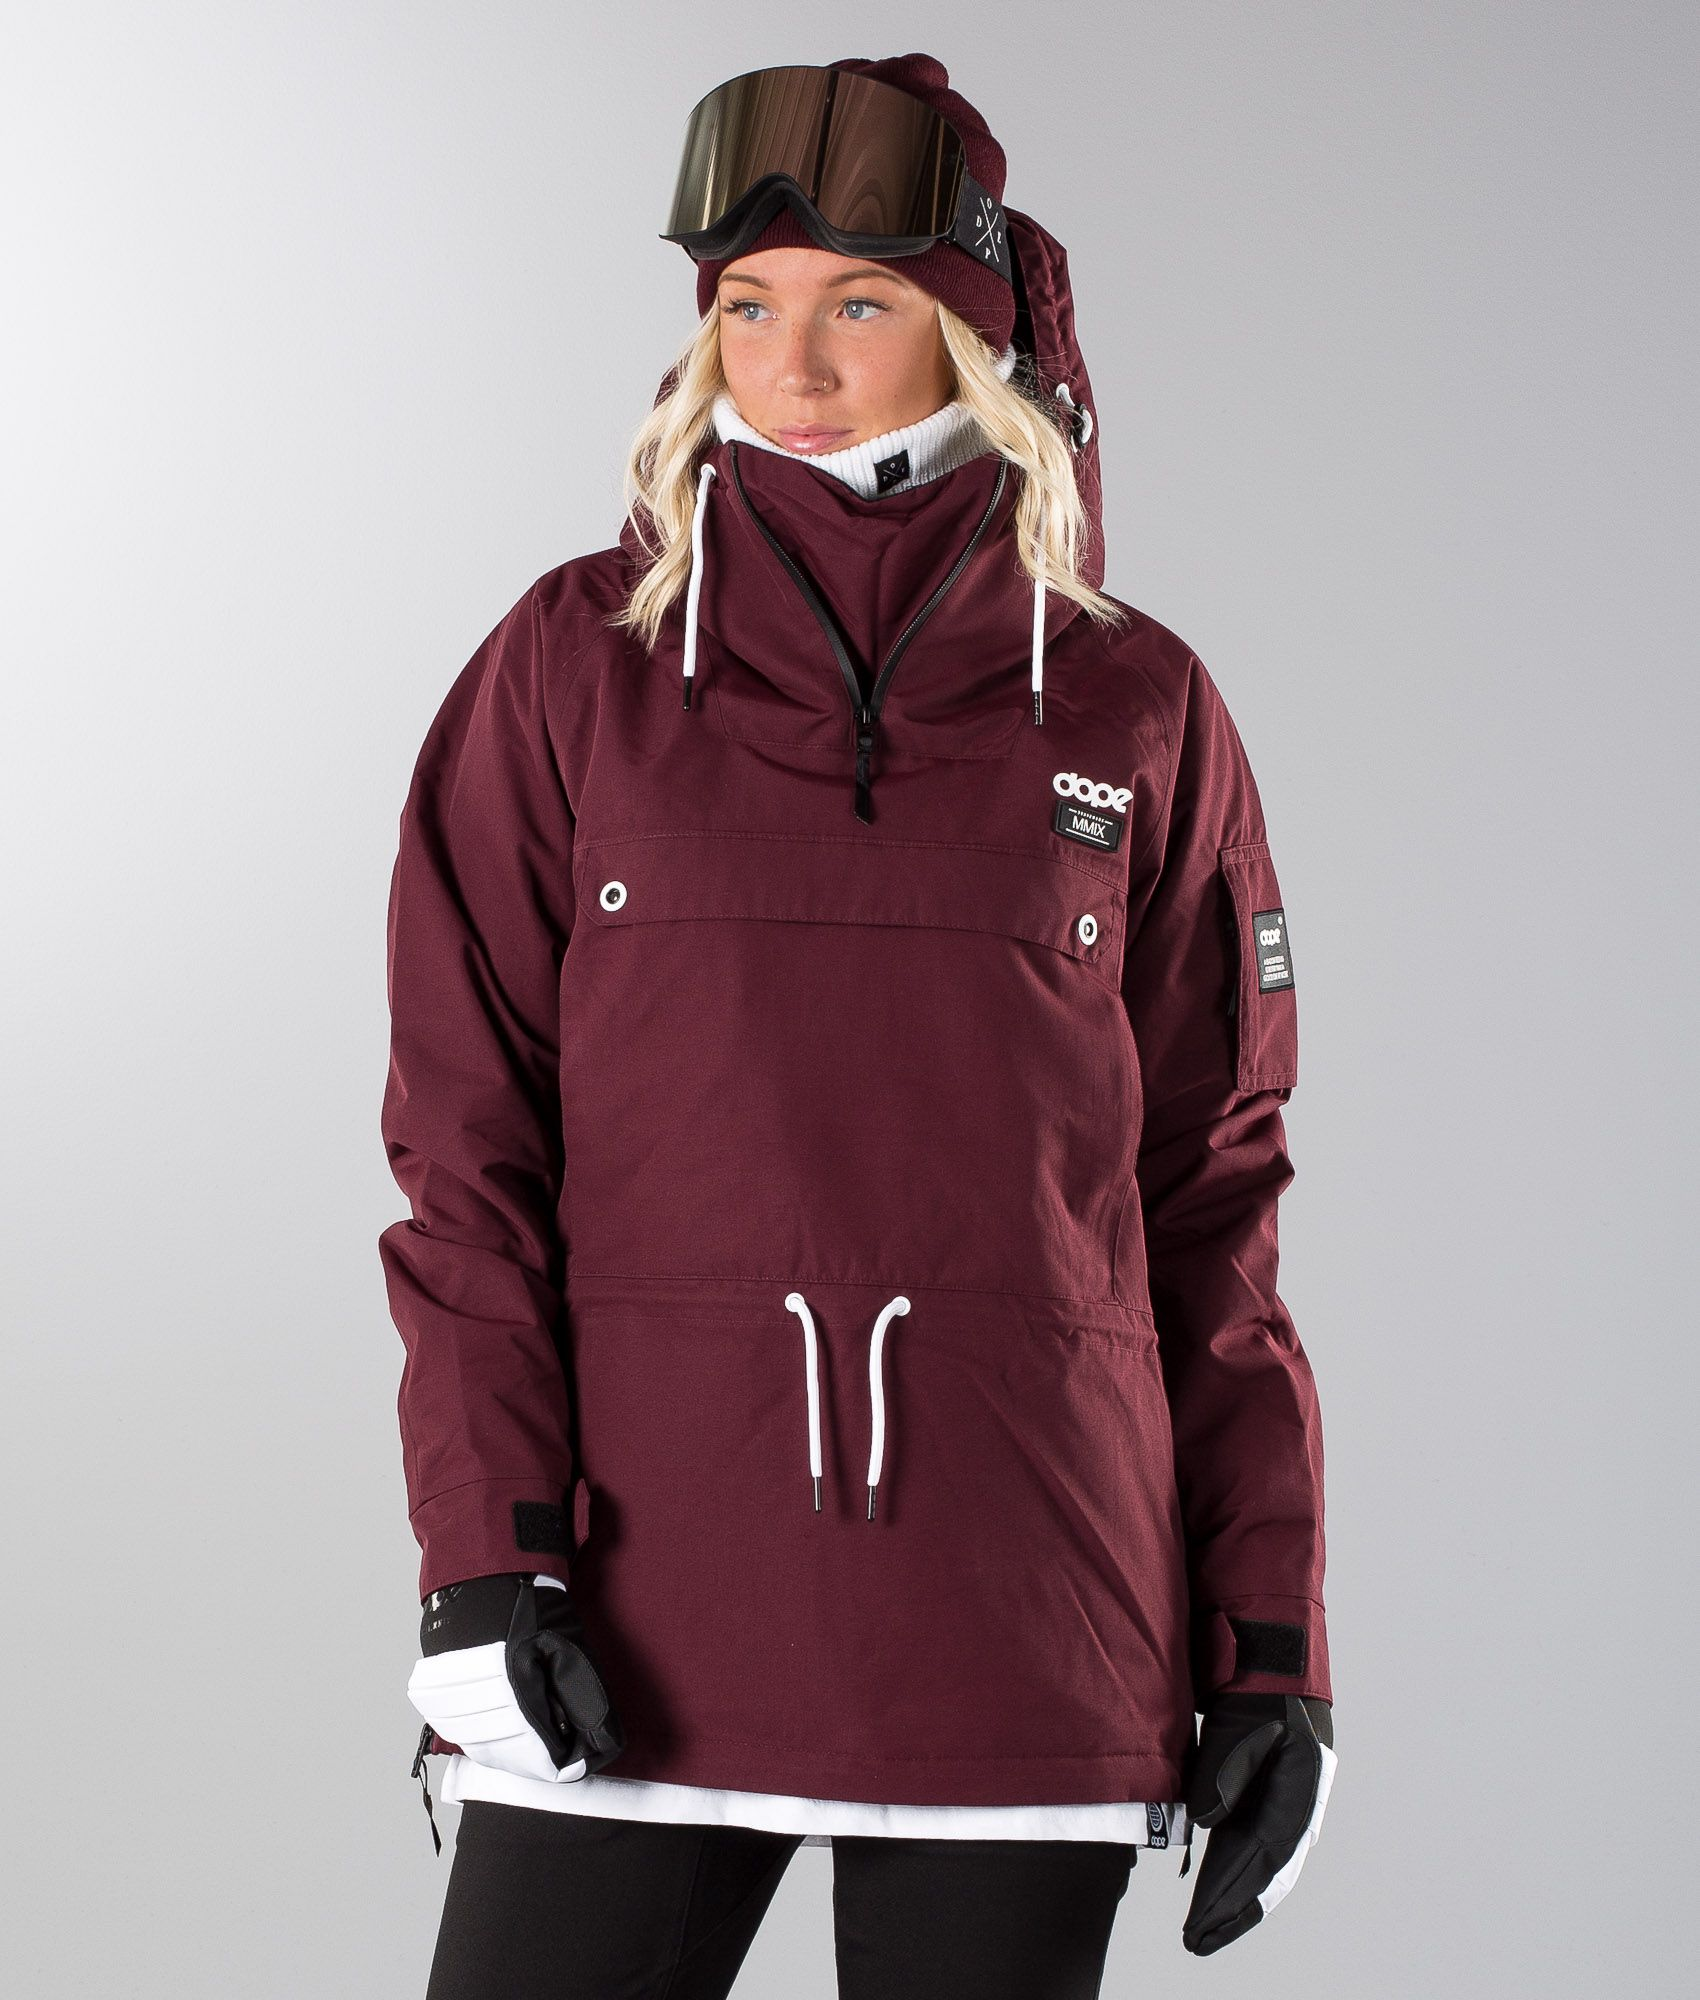 Buy Annok W Snowboard Jacket from Dope at Ridestore.com - Always free  shipping c292c6056